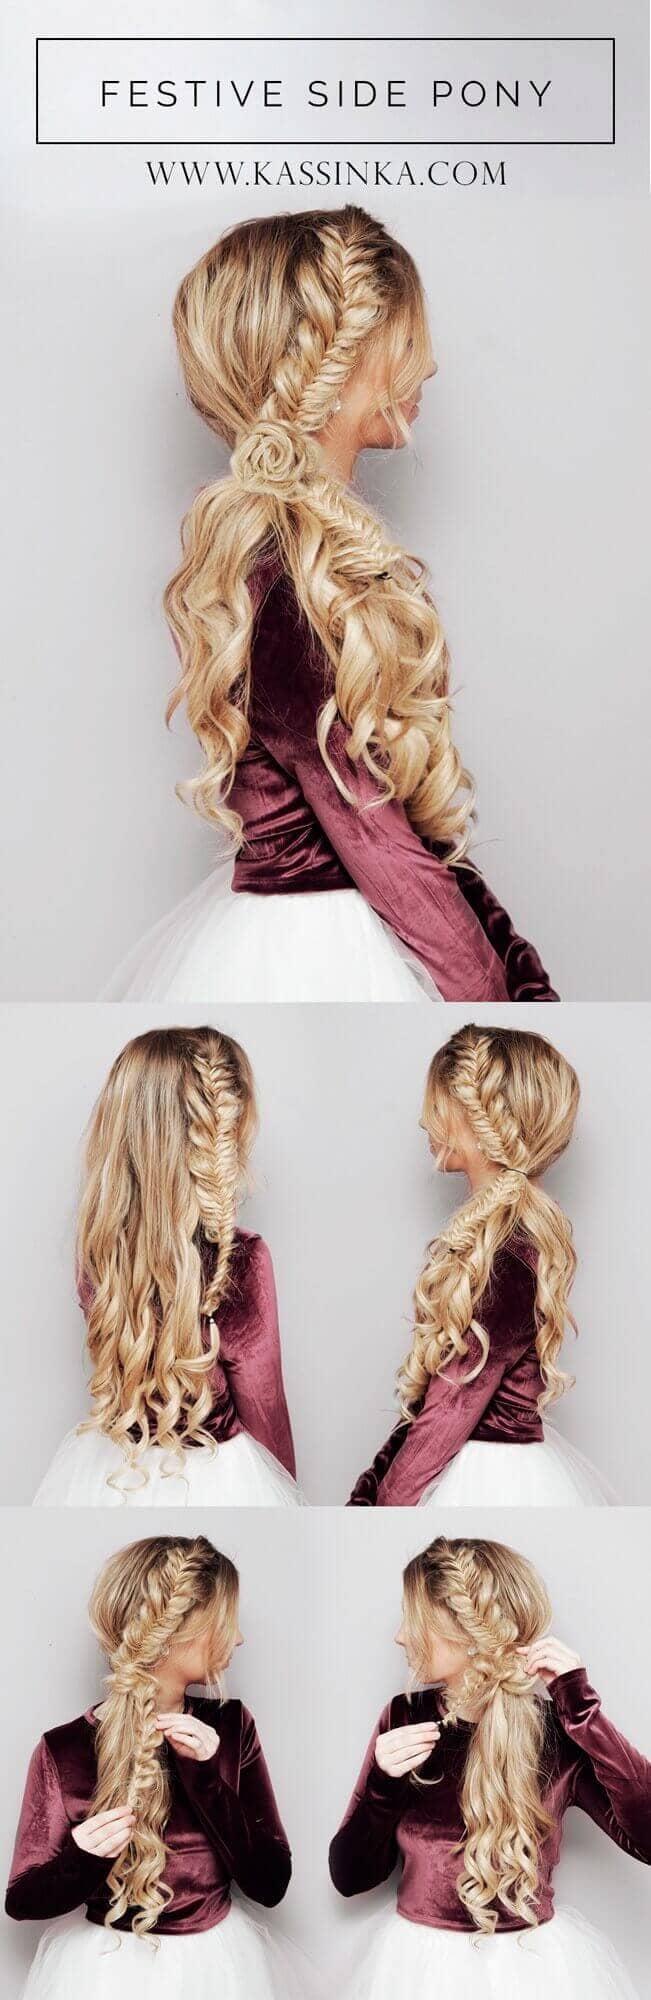 Wavy Side Pony With Fishtail Braid